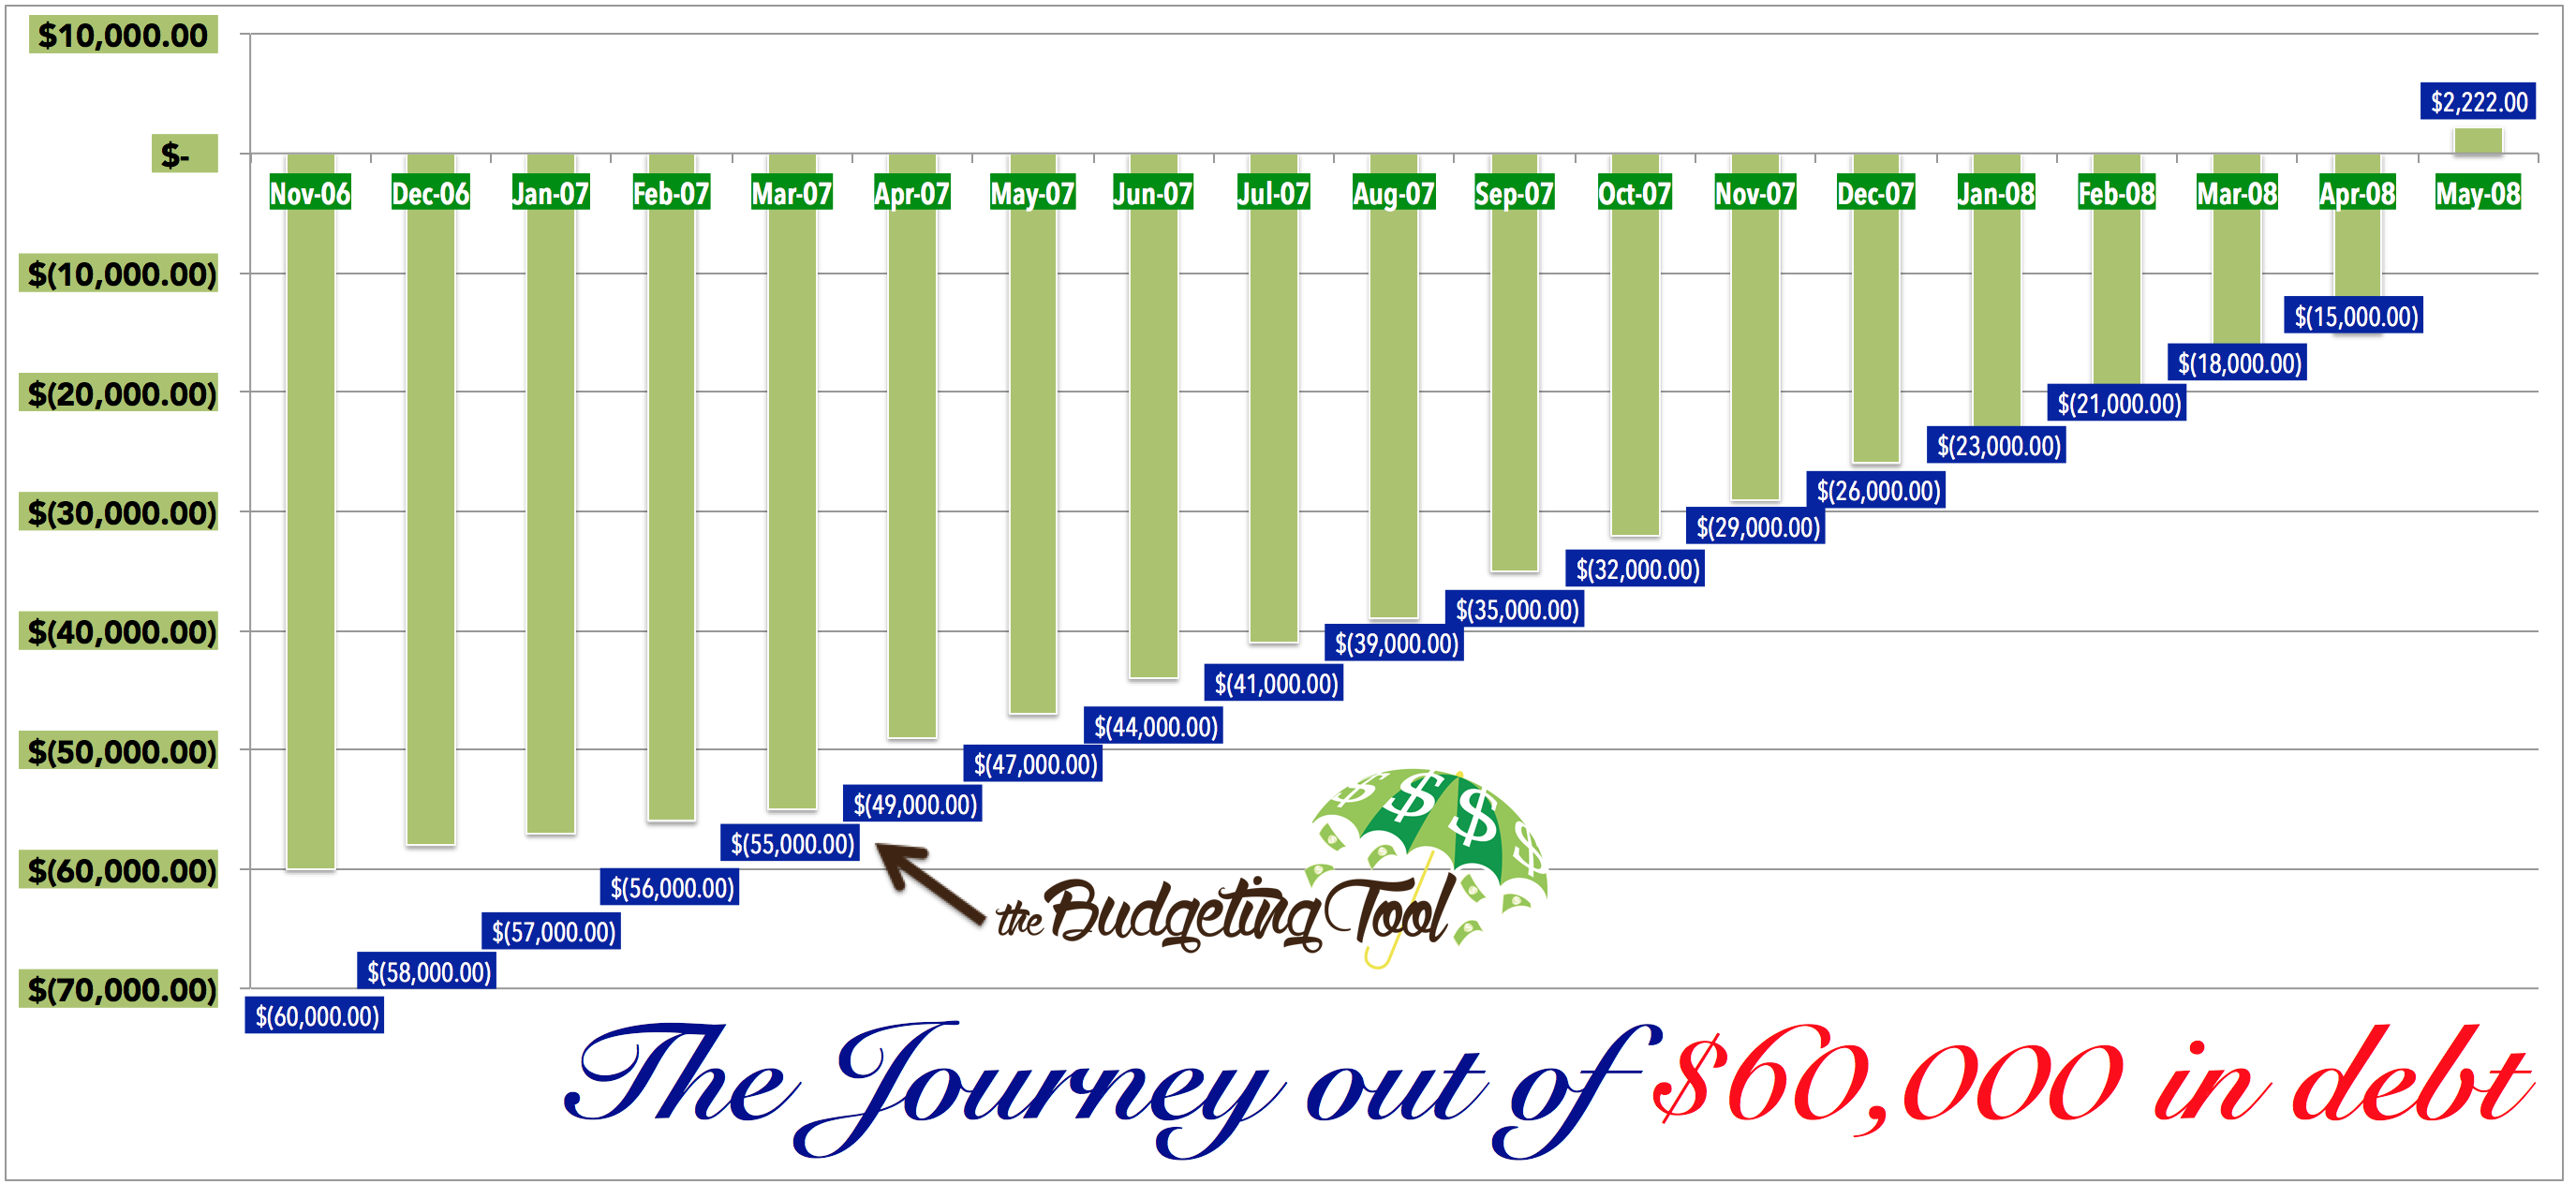 How I got out of $60,000 of debt in 18 months – The budgeting tool ...